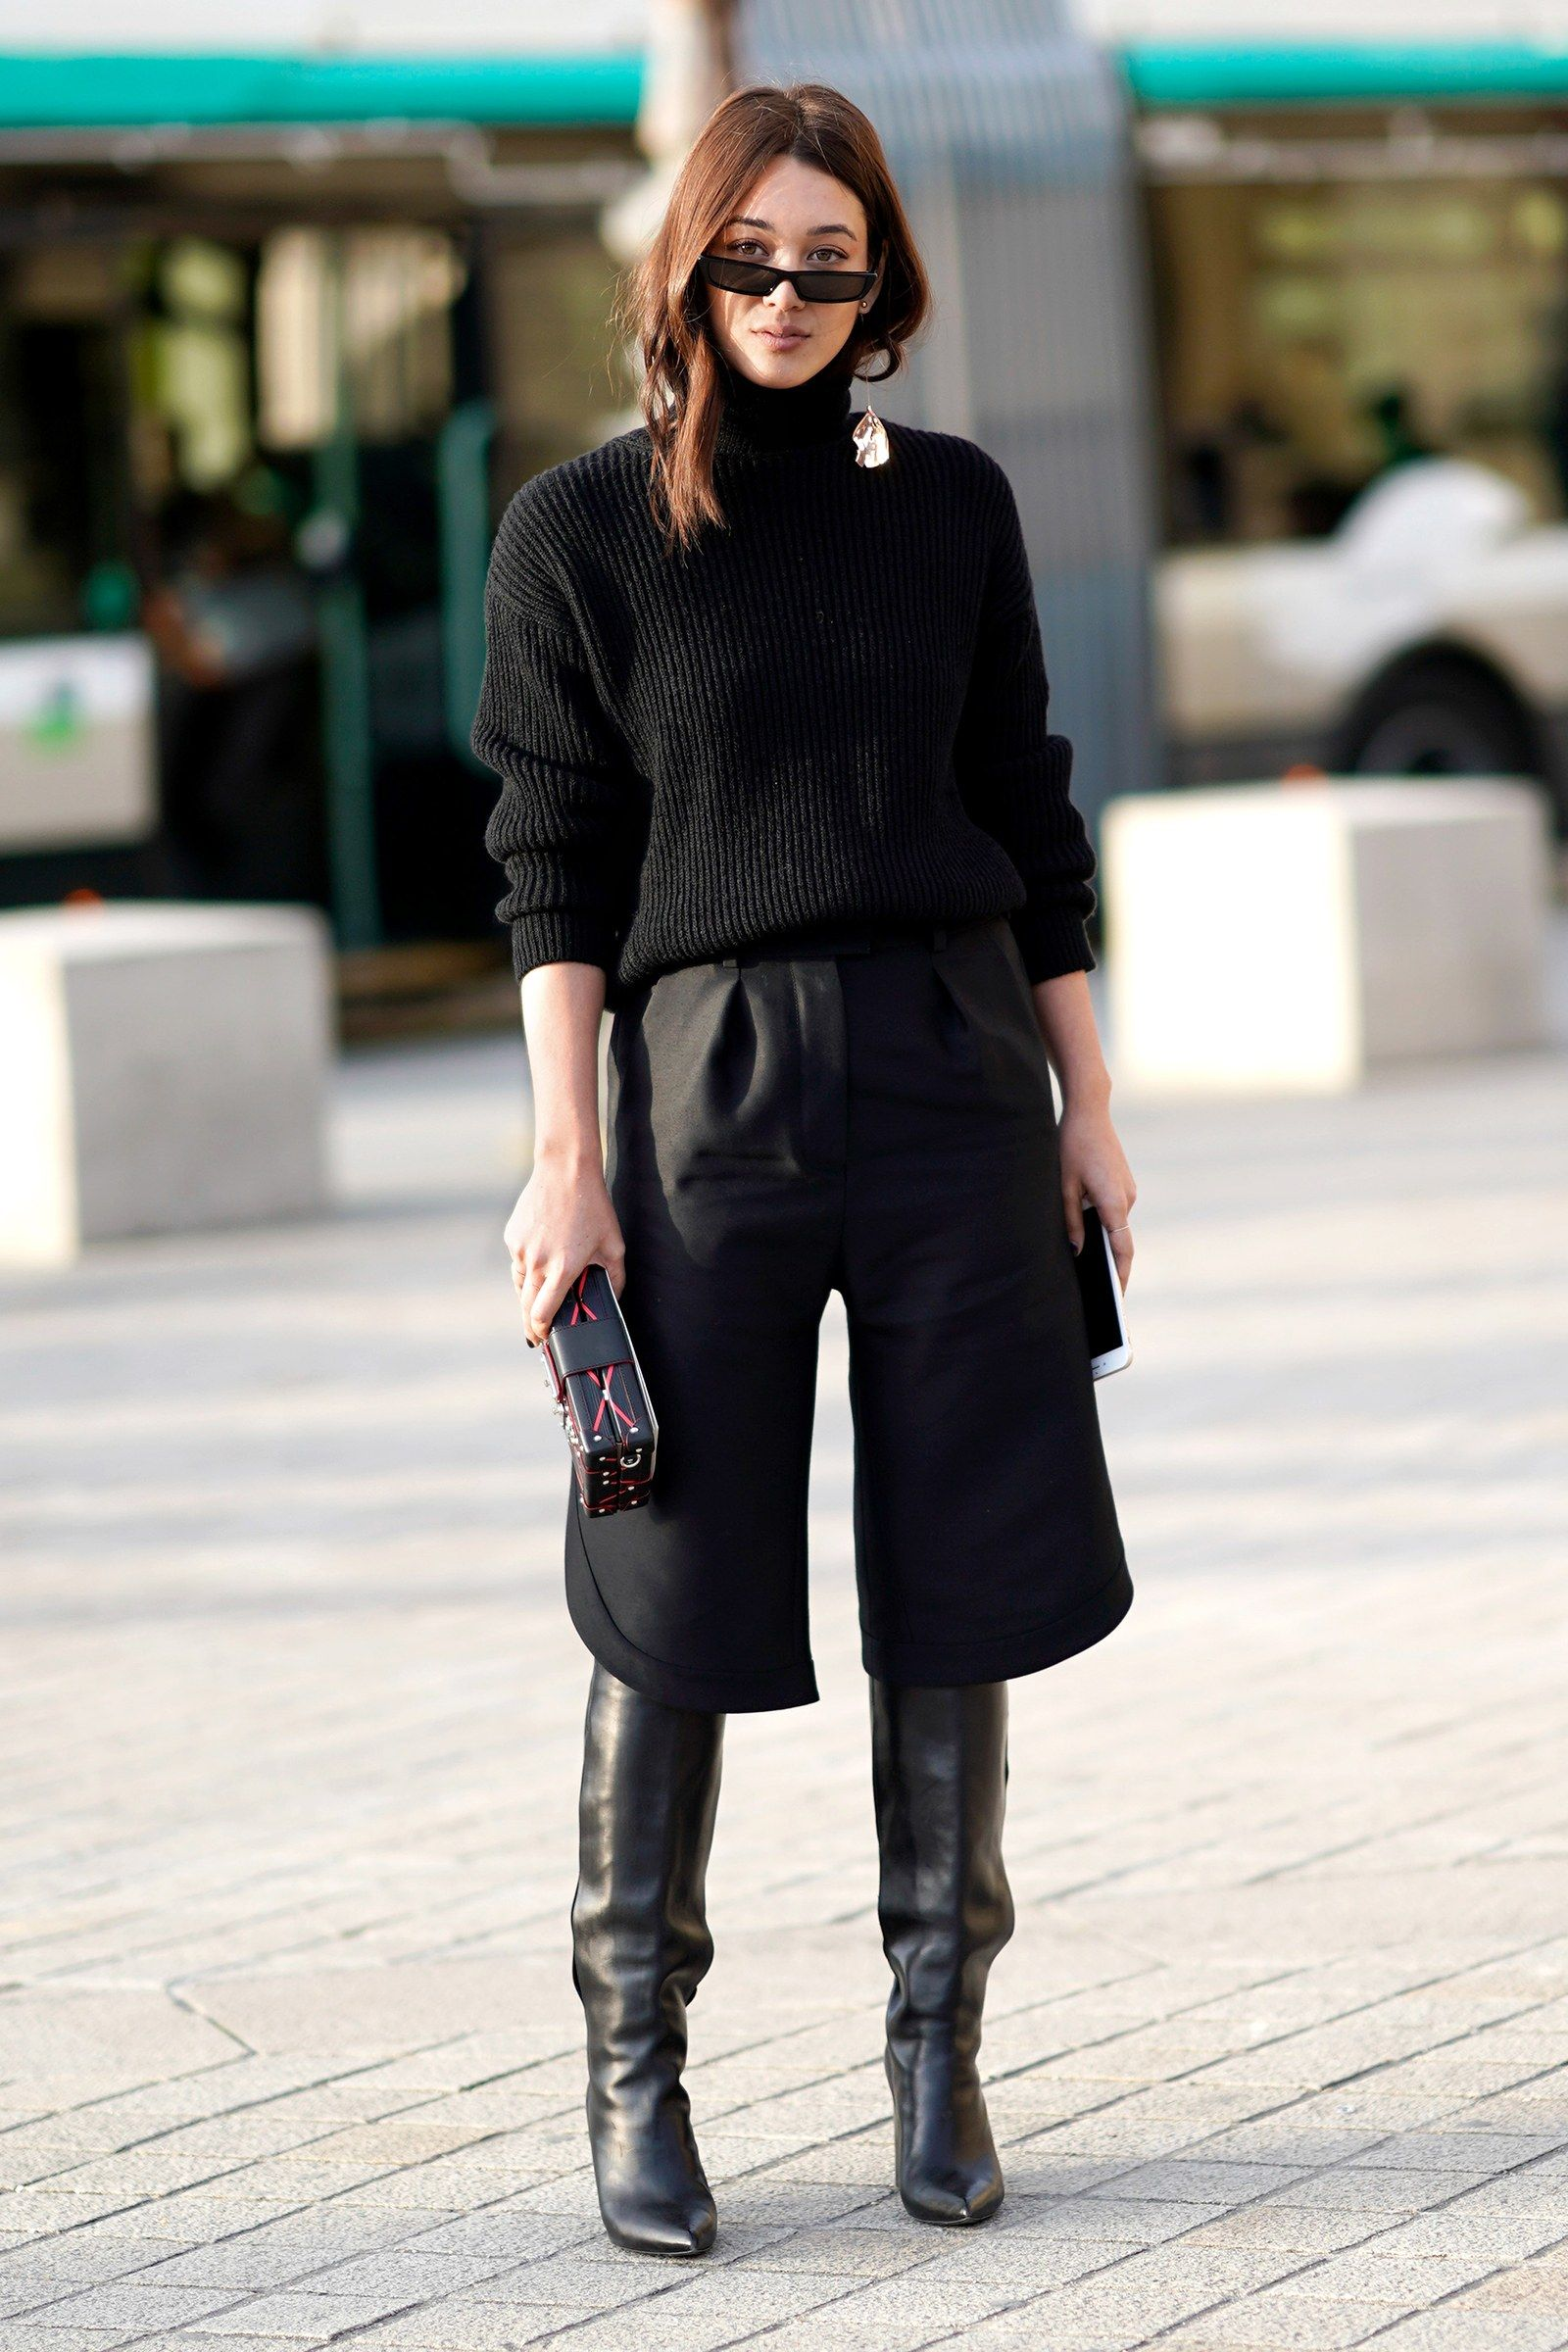 fd1534e4703f0b 20 Fresh Ways to Wear Culottes This Season in 2019 | Clothes | How ...